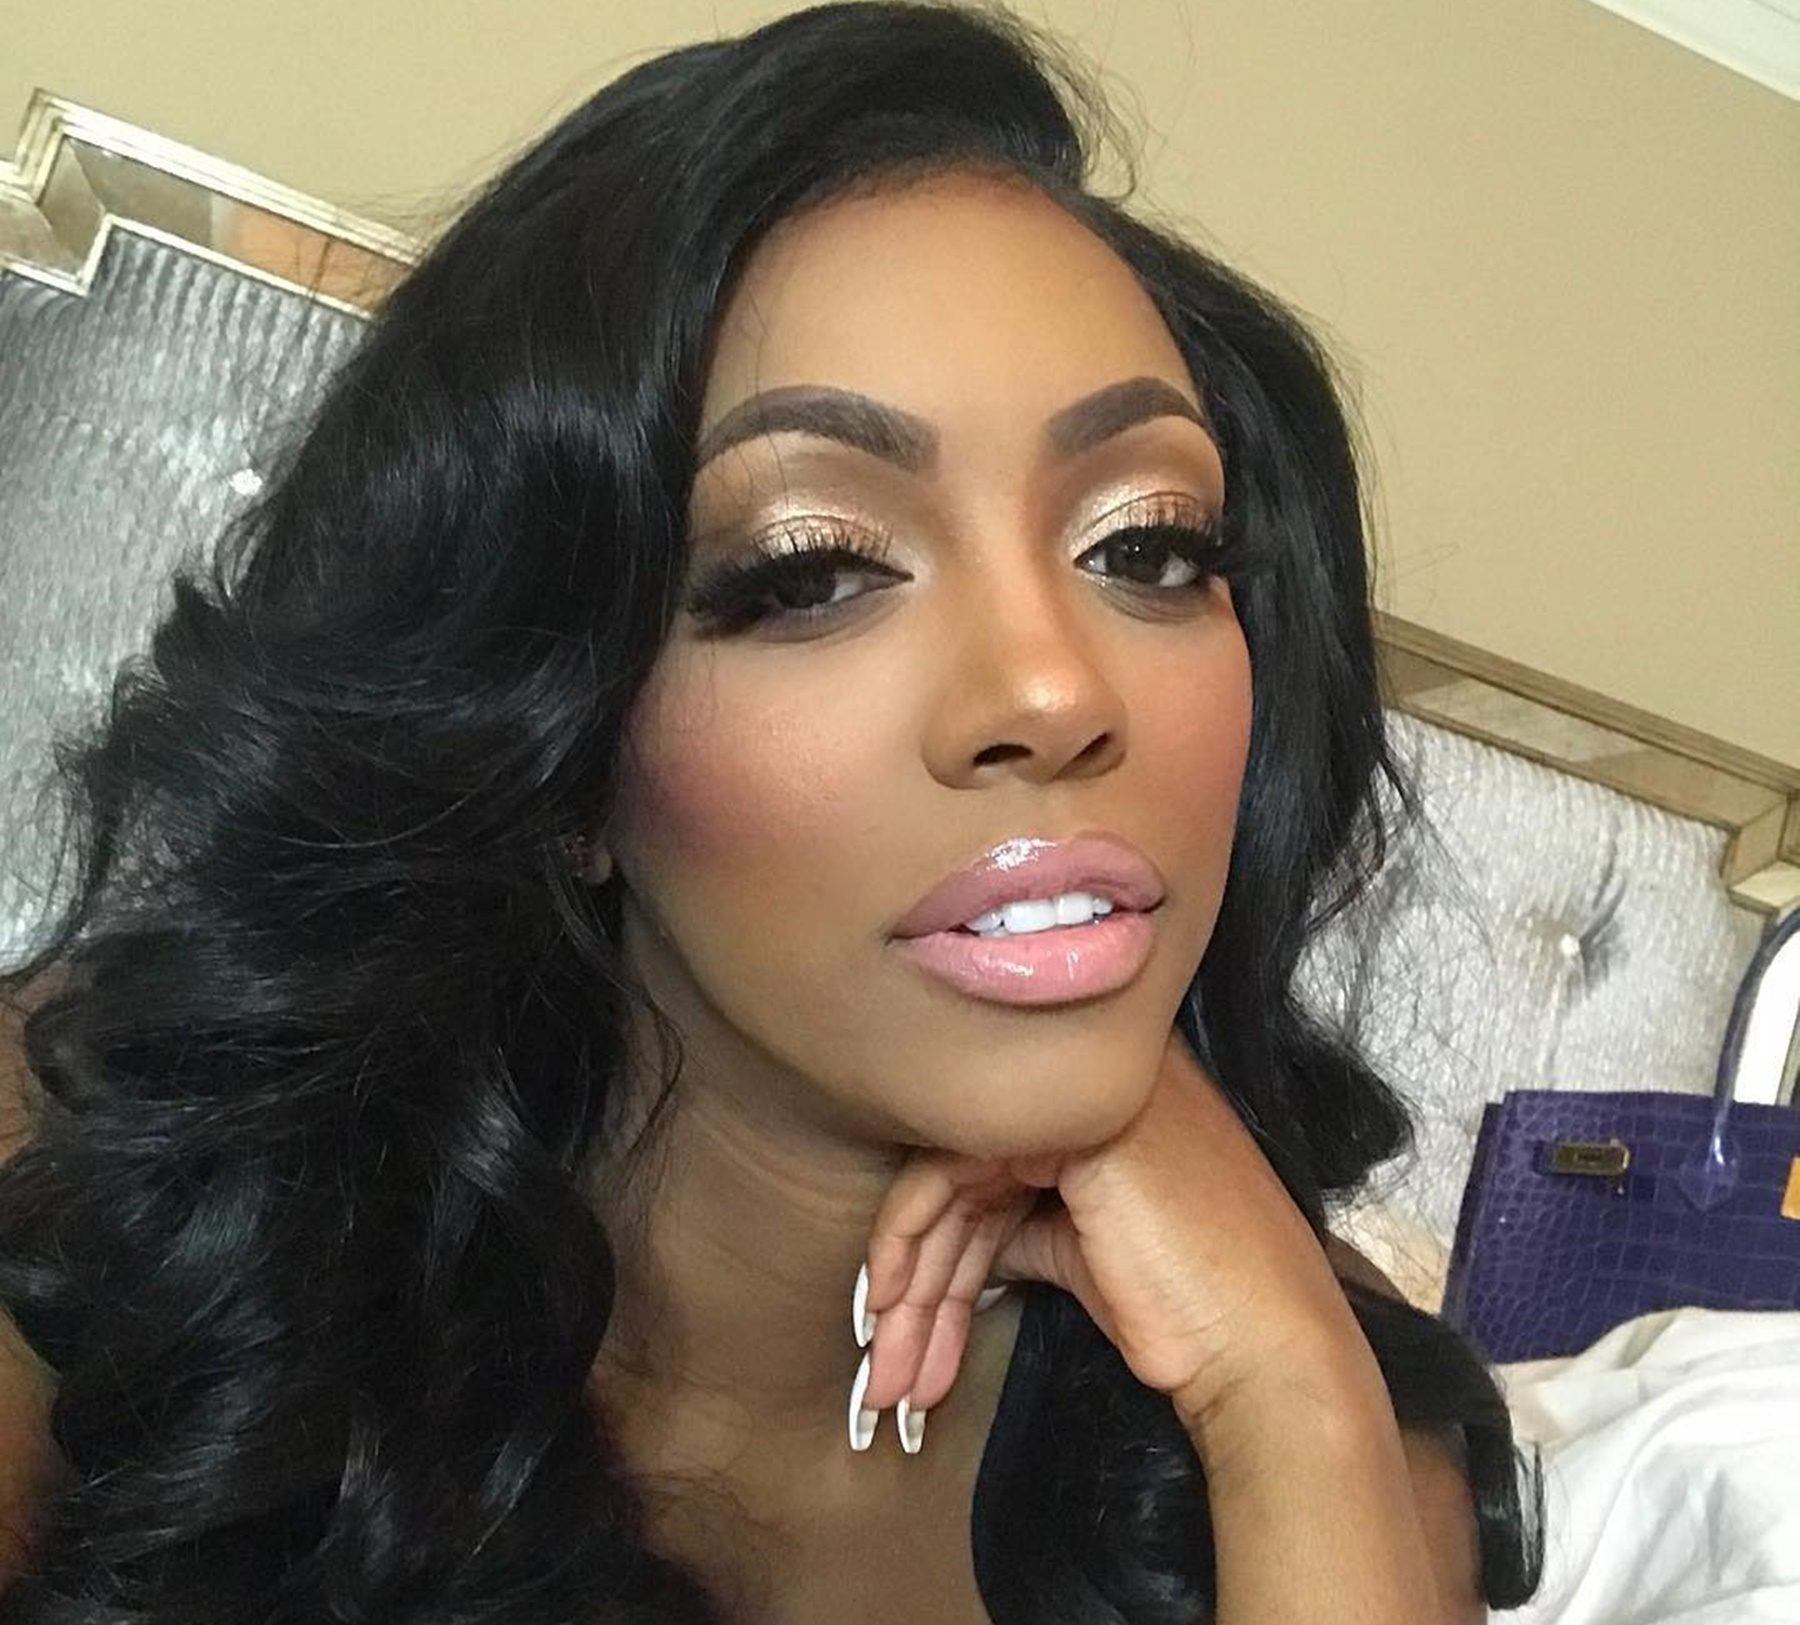 Porsha Williams Gets Ranked No.2 By TV Guide In Their '46 Houseiwves of 2018' List